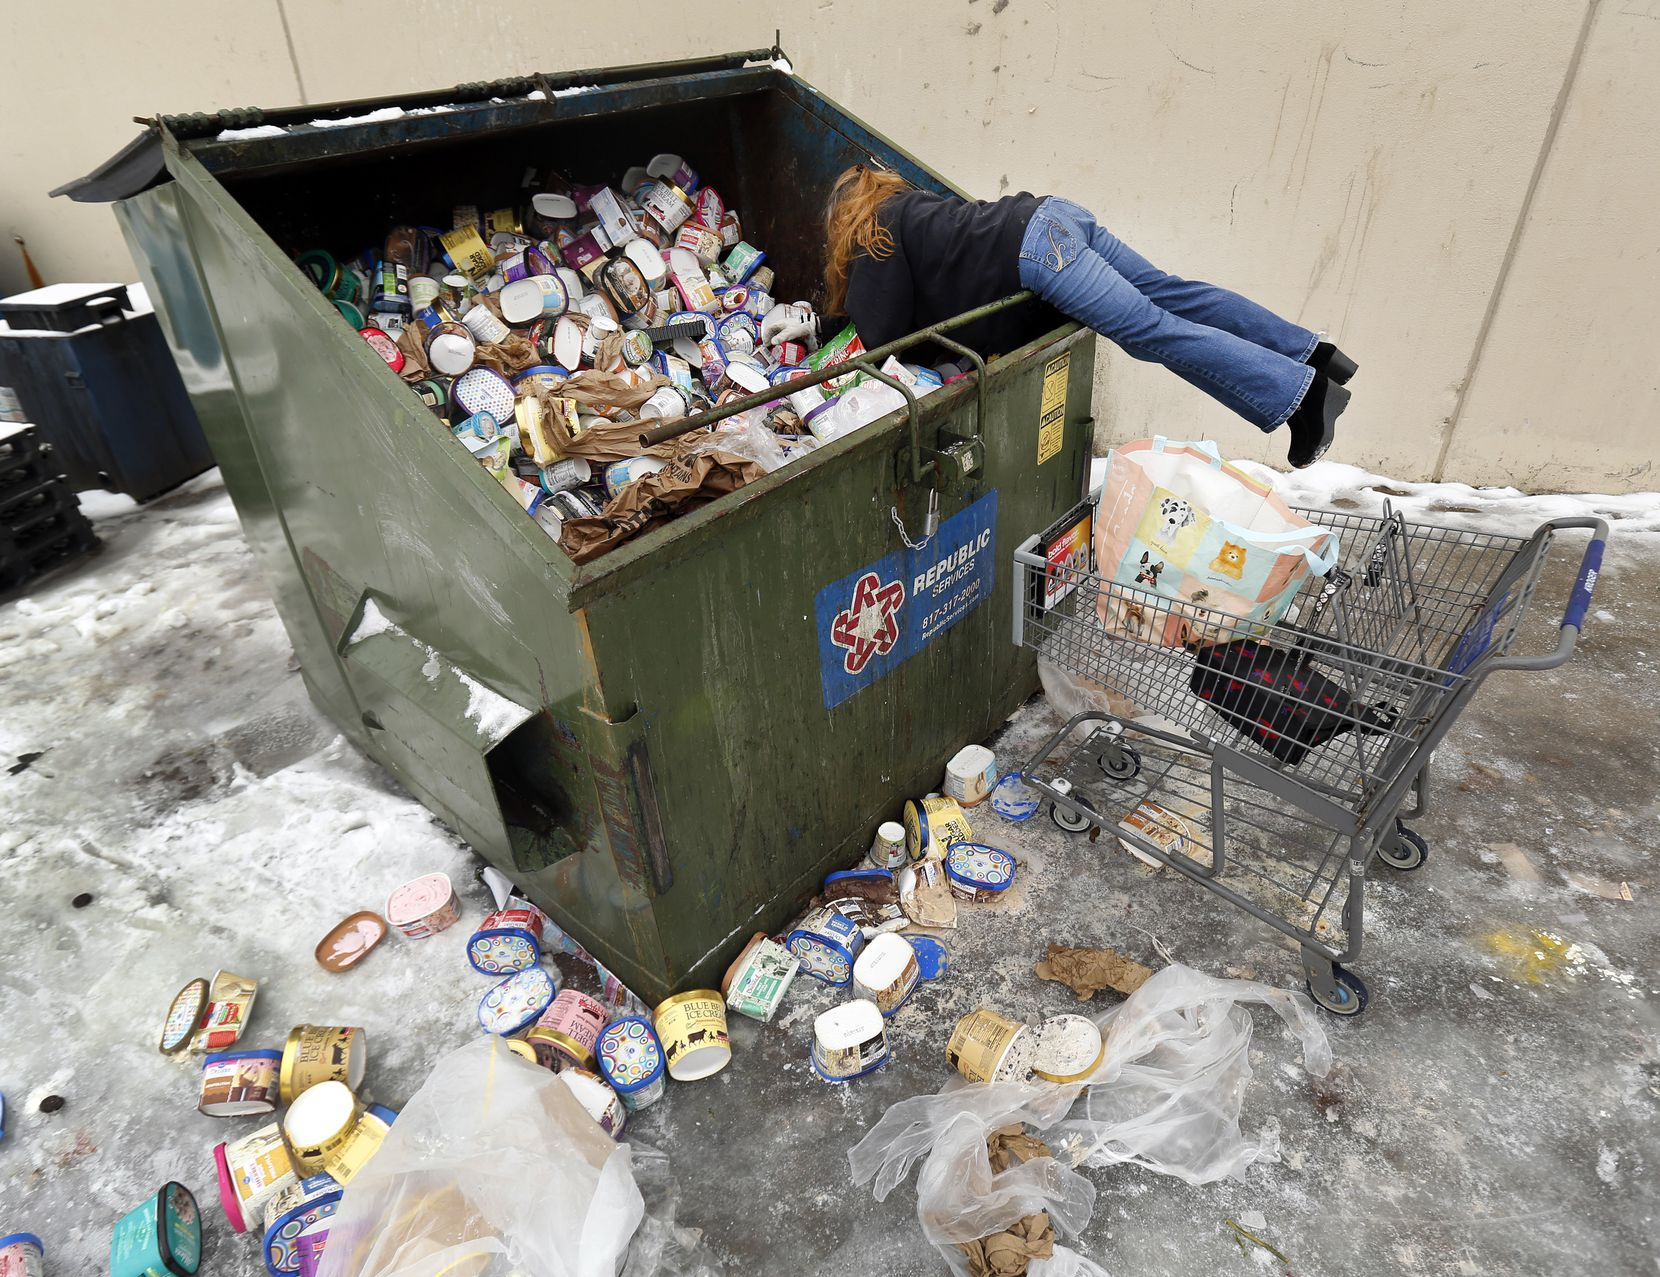 """After seeing a posting on Facebook, LaDonna (no last name given) drove from Johnson County to collect some of the dumpsters-full of ice cream thrown out at a Southwest Arlington Kroger store, Wednesday, February 17, 2021. LaDonna said she's collecting the frozen goods for her neighbors. """"I do it because they would do it for me."""", she said. Rolling power outages this week have forced businesses to clear merchandise that needs refrigeration. The power is back Wednesday and the store is open."""